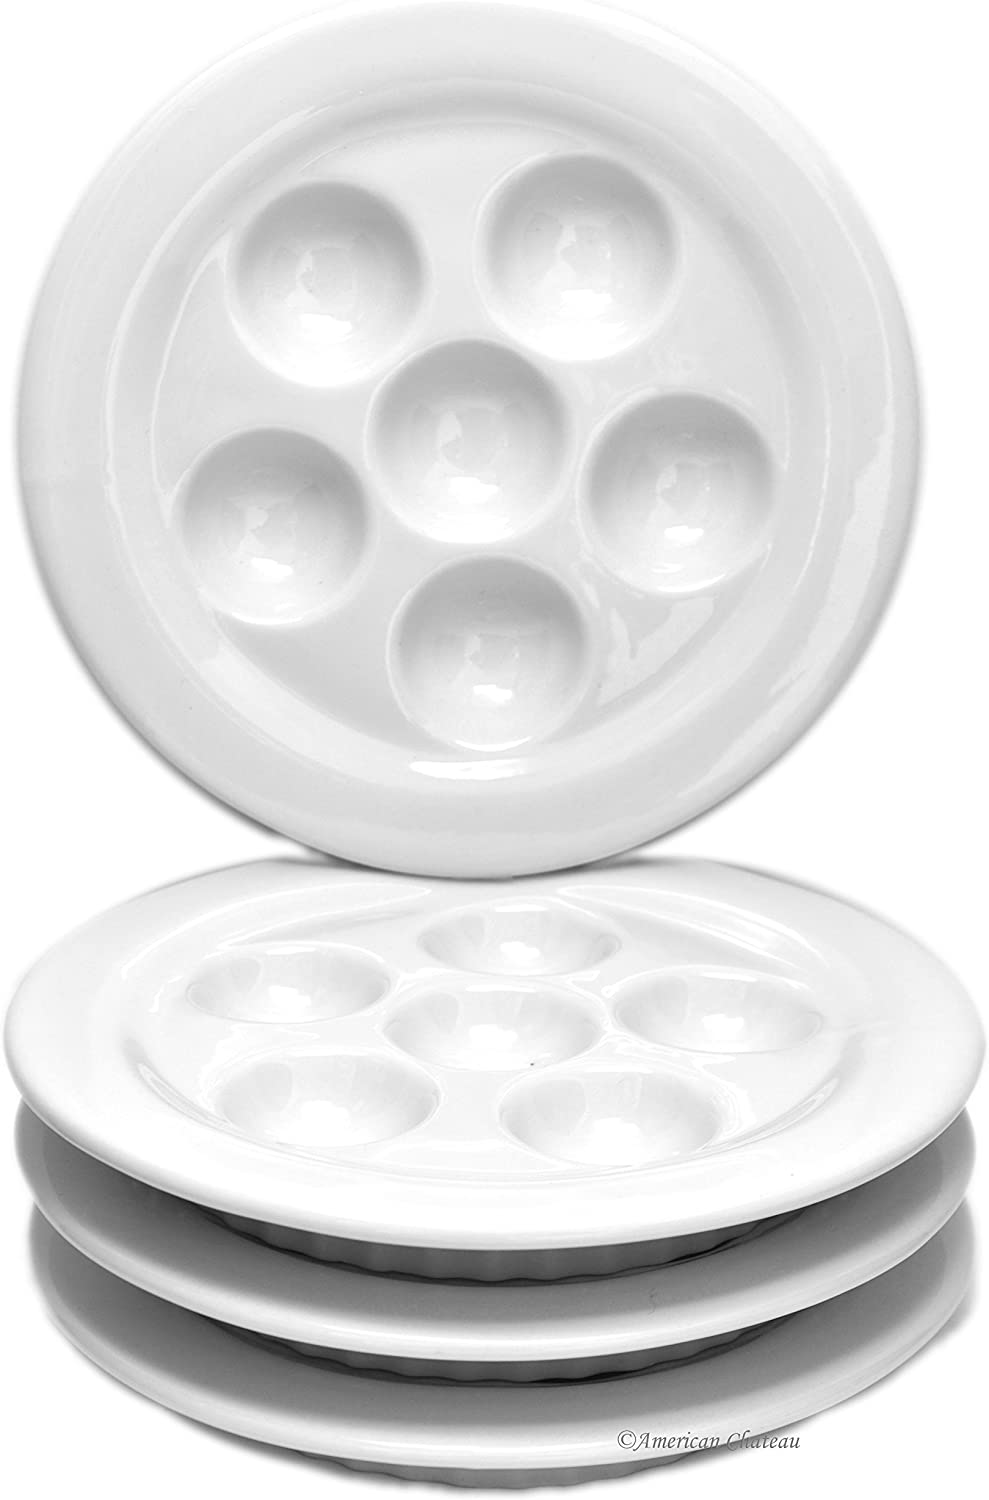 Amazon.com: Set 4 platos porcelana de color blanco Caracol ...